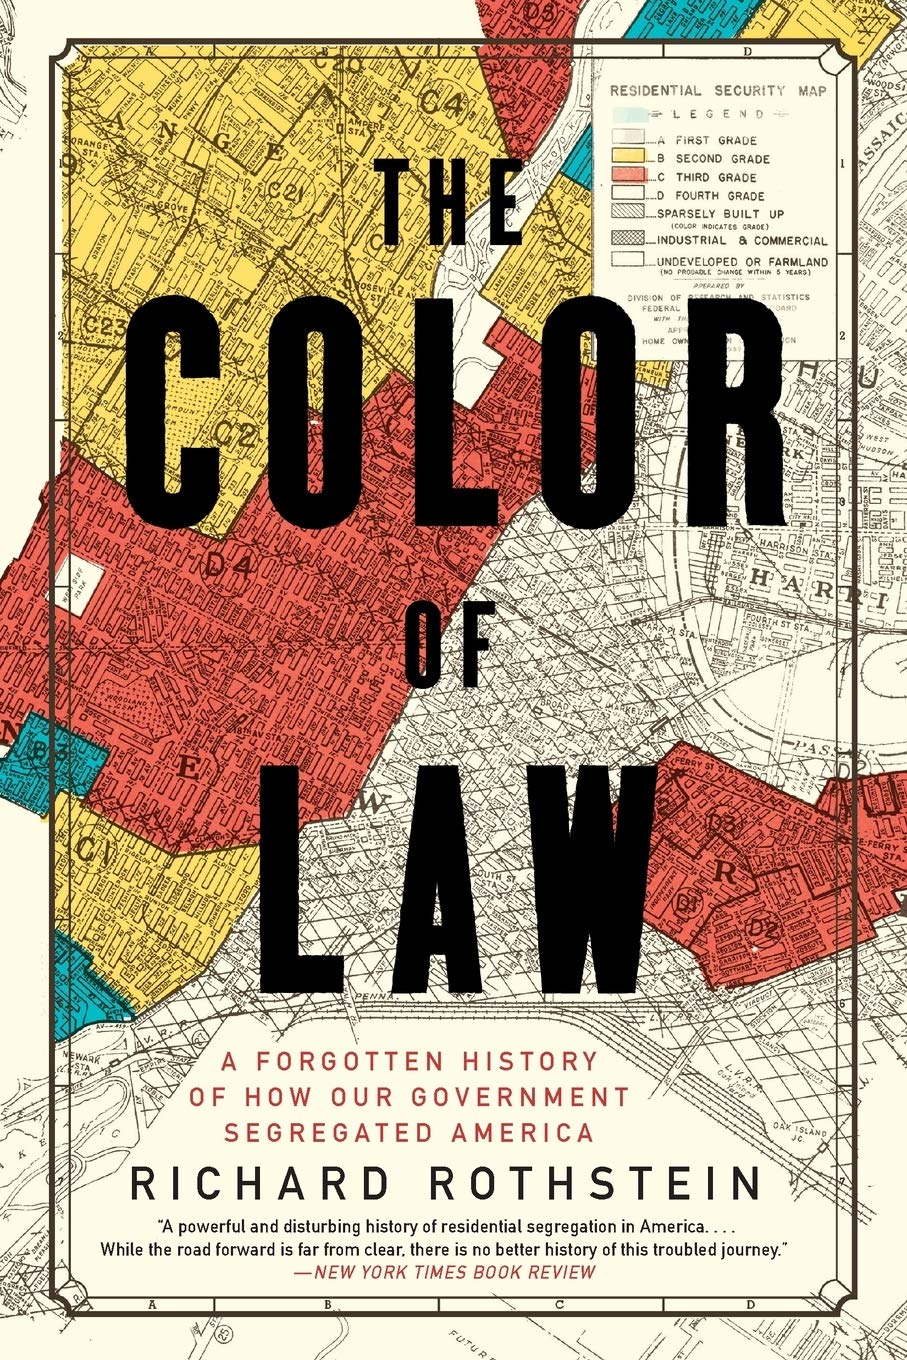 Download The Color Of Law: A Forgotten History Of How Our Government Segregated America 